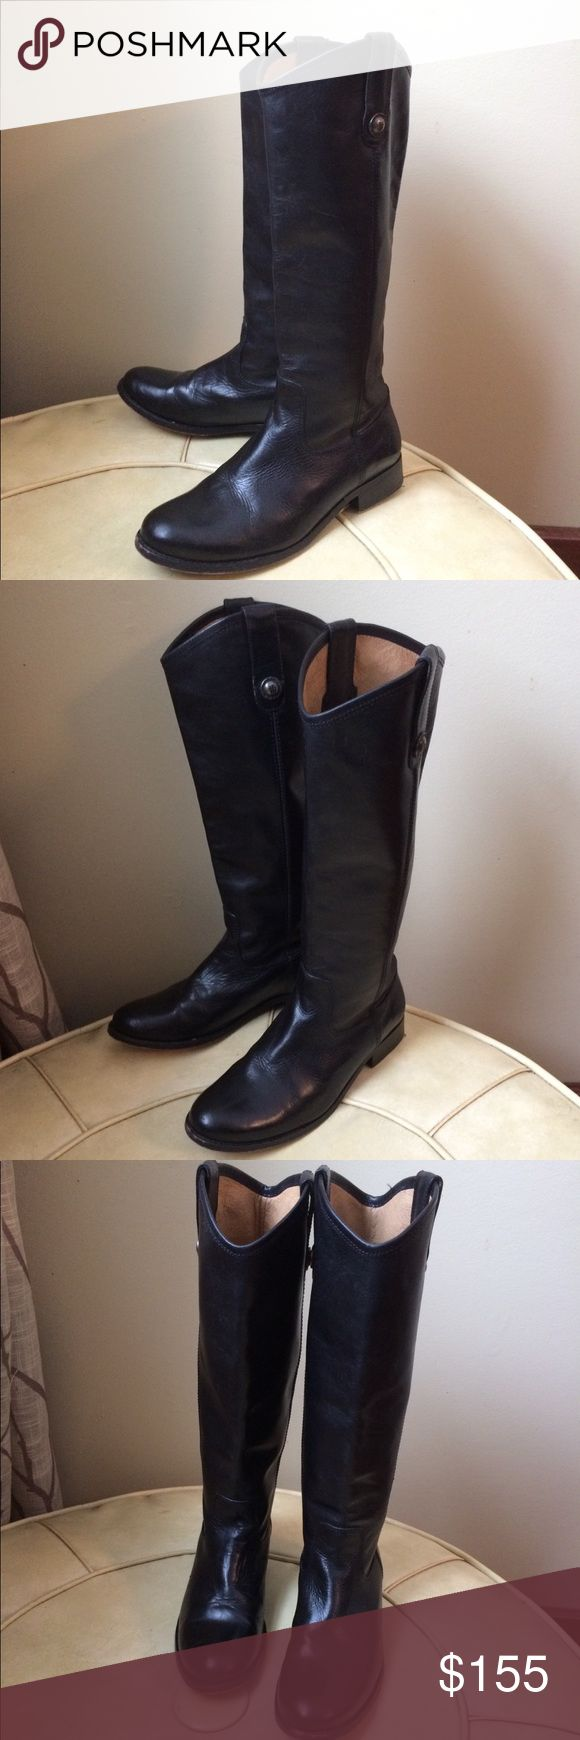 Frye Melissa Tall Riding Boots 77167 Melissa Tall Button Riding boots by Frye. Black. Excellent condition, very little wear,  leather is in excellent condition and is very soft and supple. These Frye quality boots will Last you years and years.  Marked as follows inside: 6 B 77167 4015 G 12 Made in Mexico Frye Shoes Combat & Moto Boots